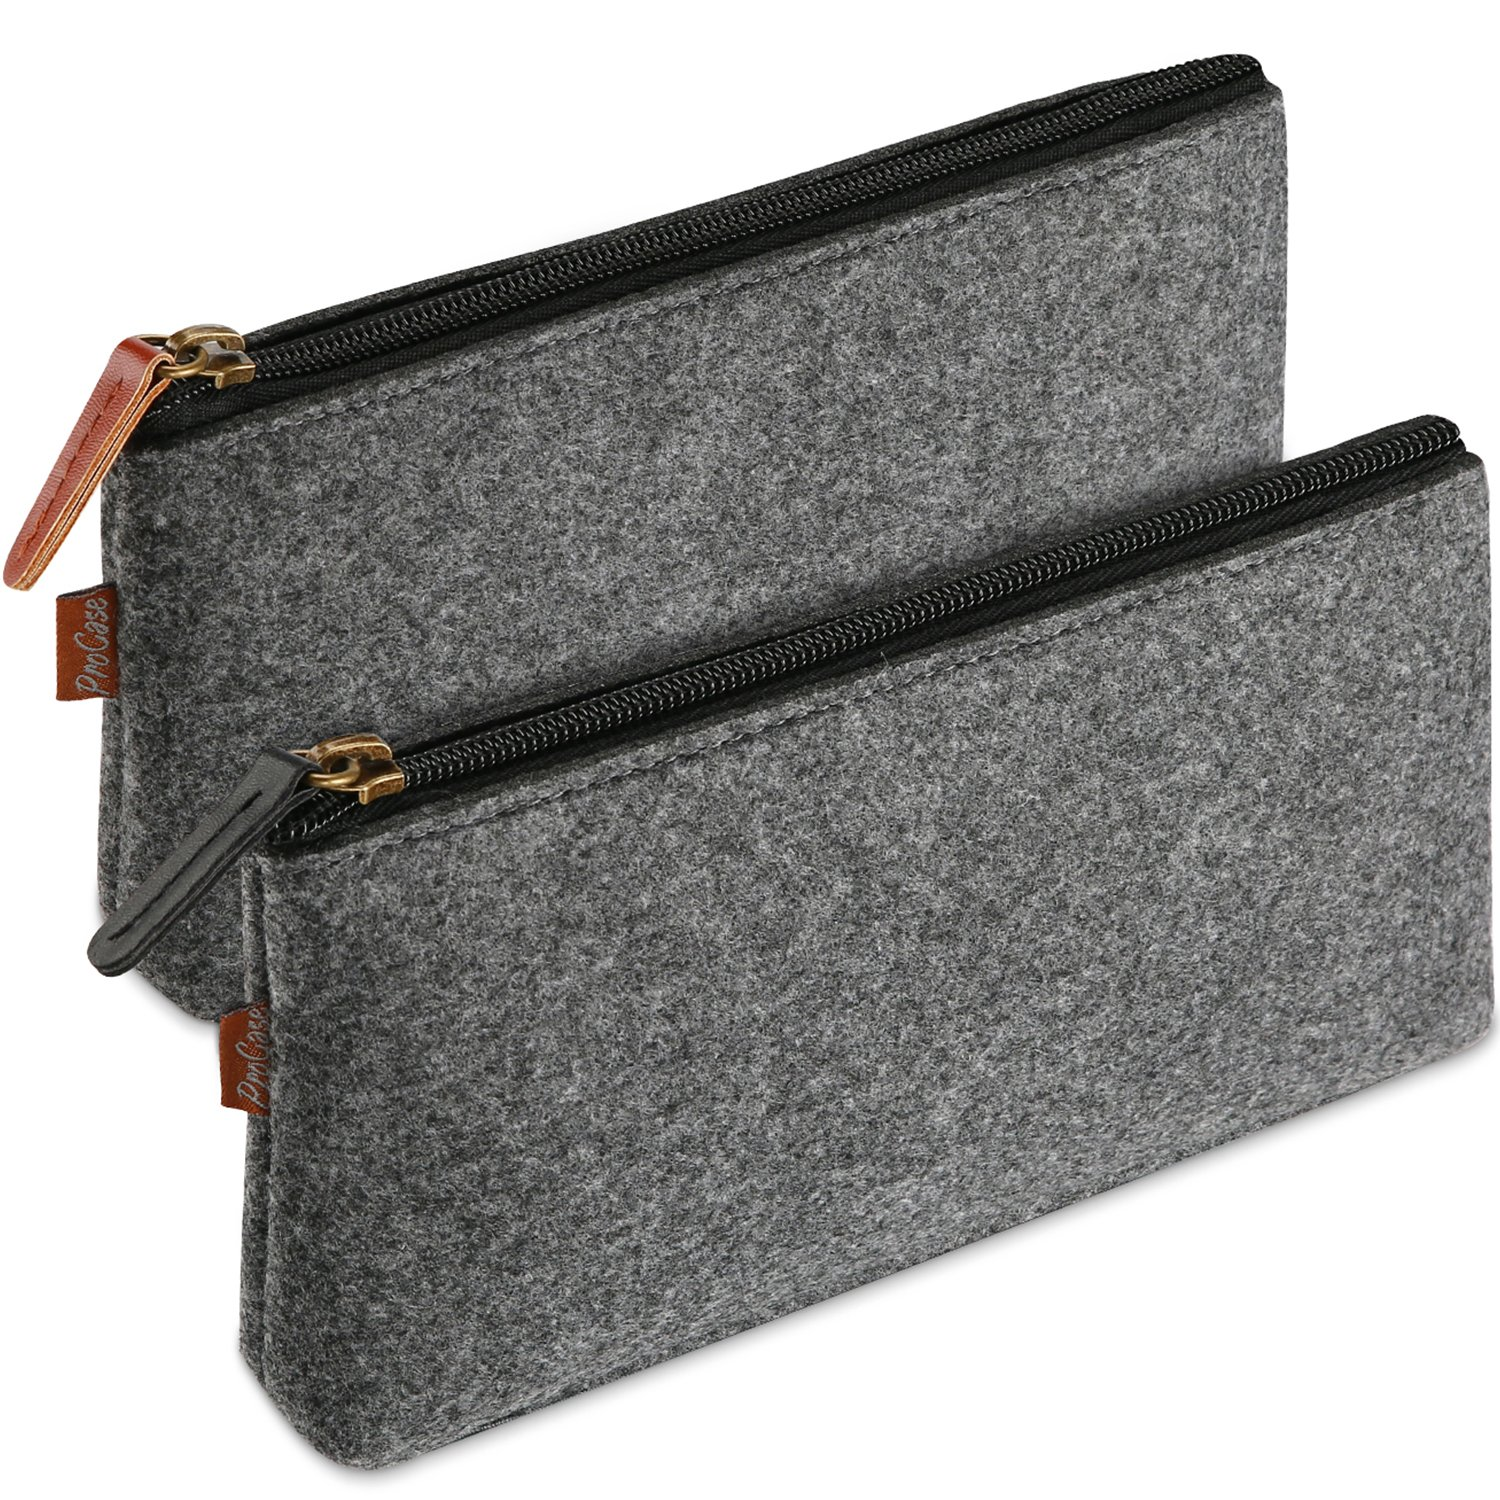 ProCase Pencil Bag Pen Case, Felt Students Stationery Pouch Zipper Bag for Pens Pencils Highlighters Gel Pen Markers and School Supplies -2 Pack, Black PC-08360442